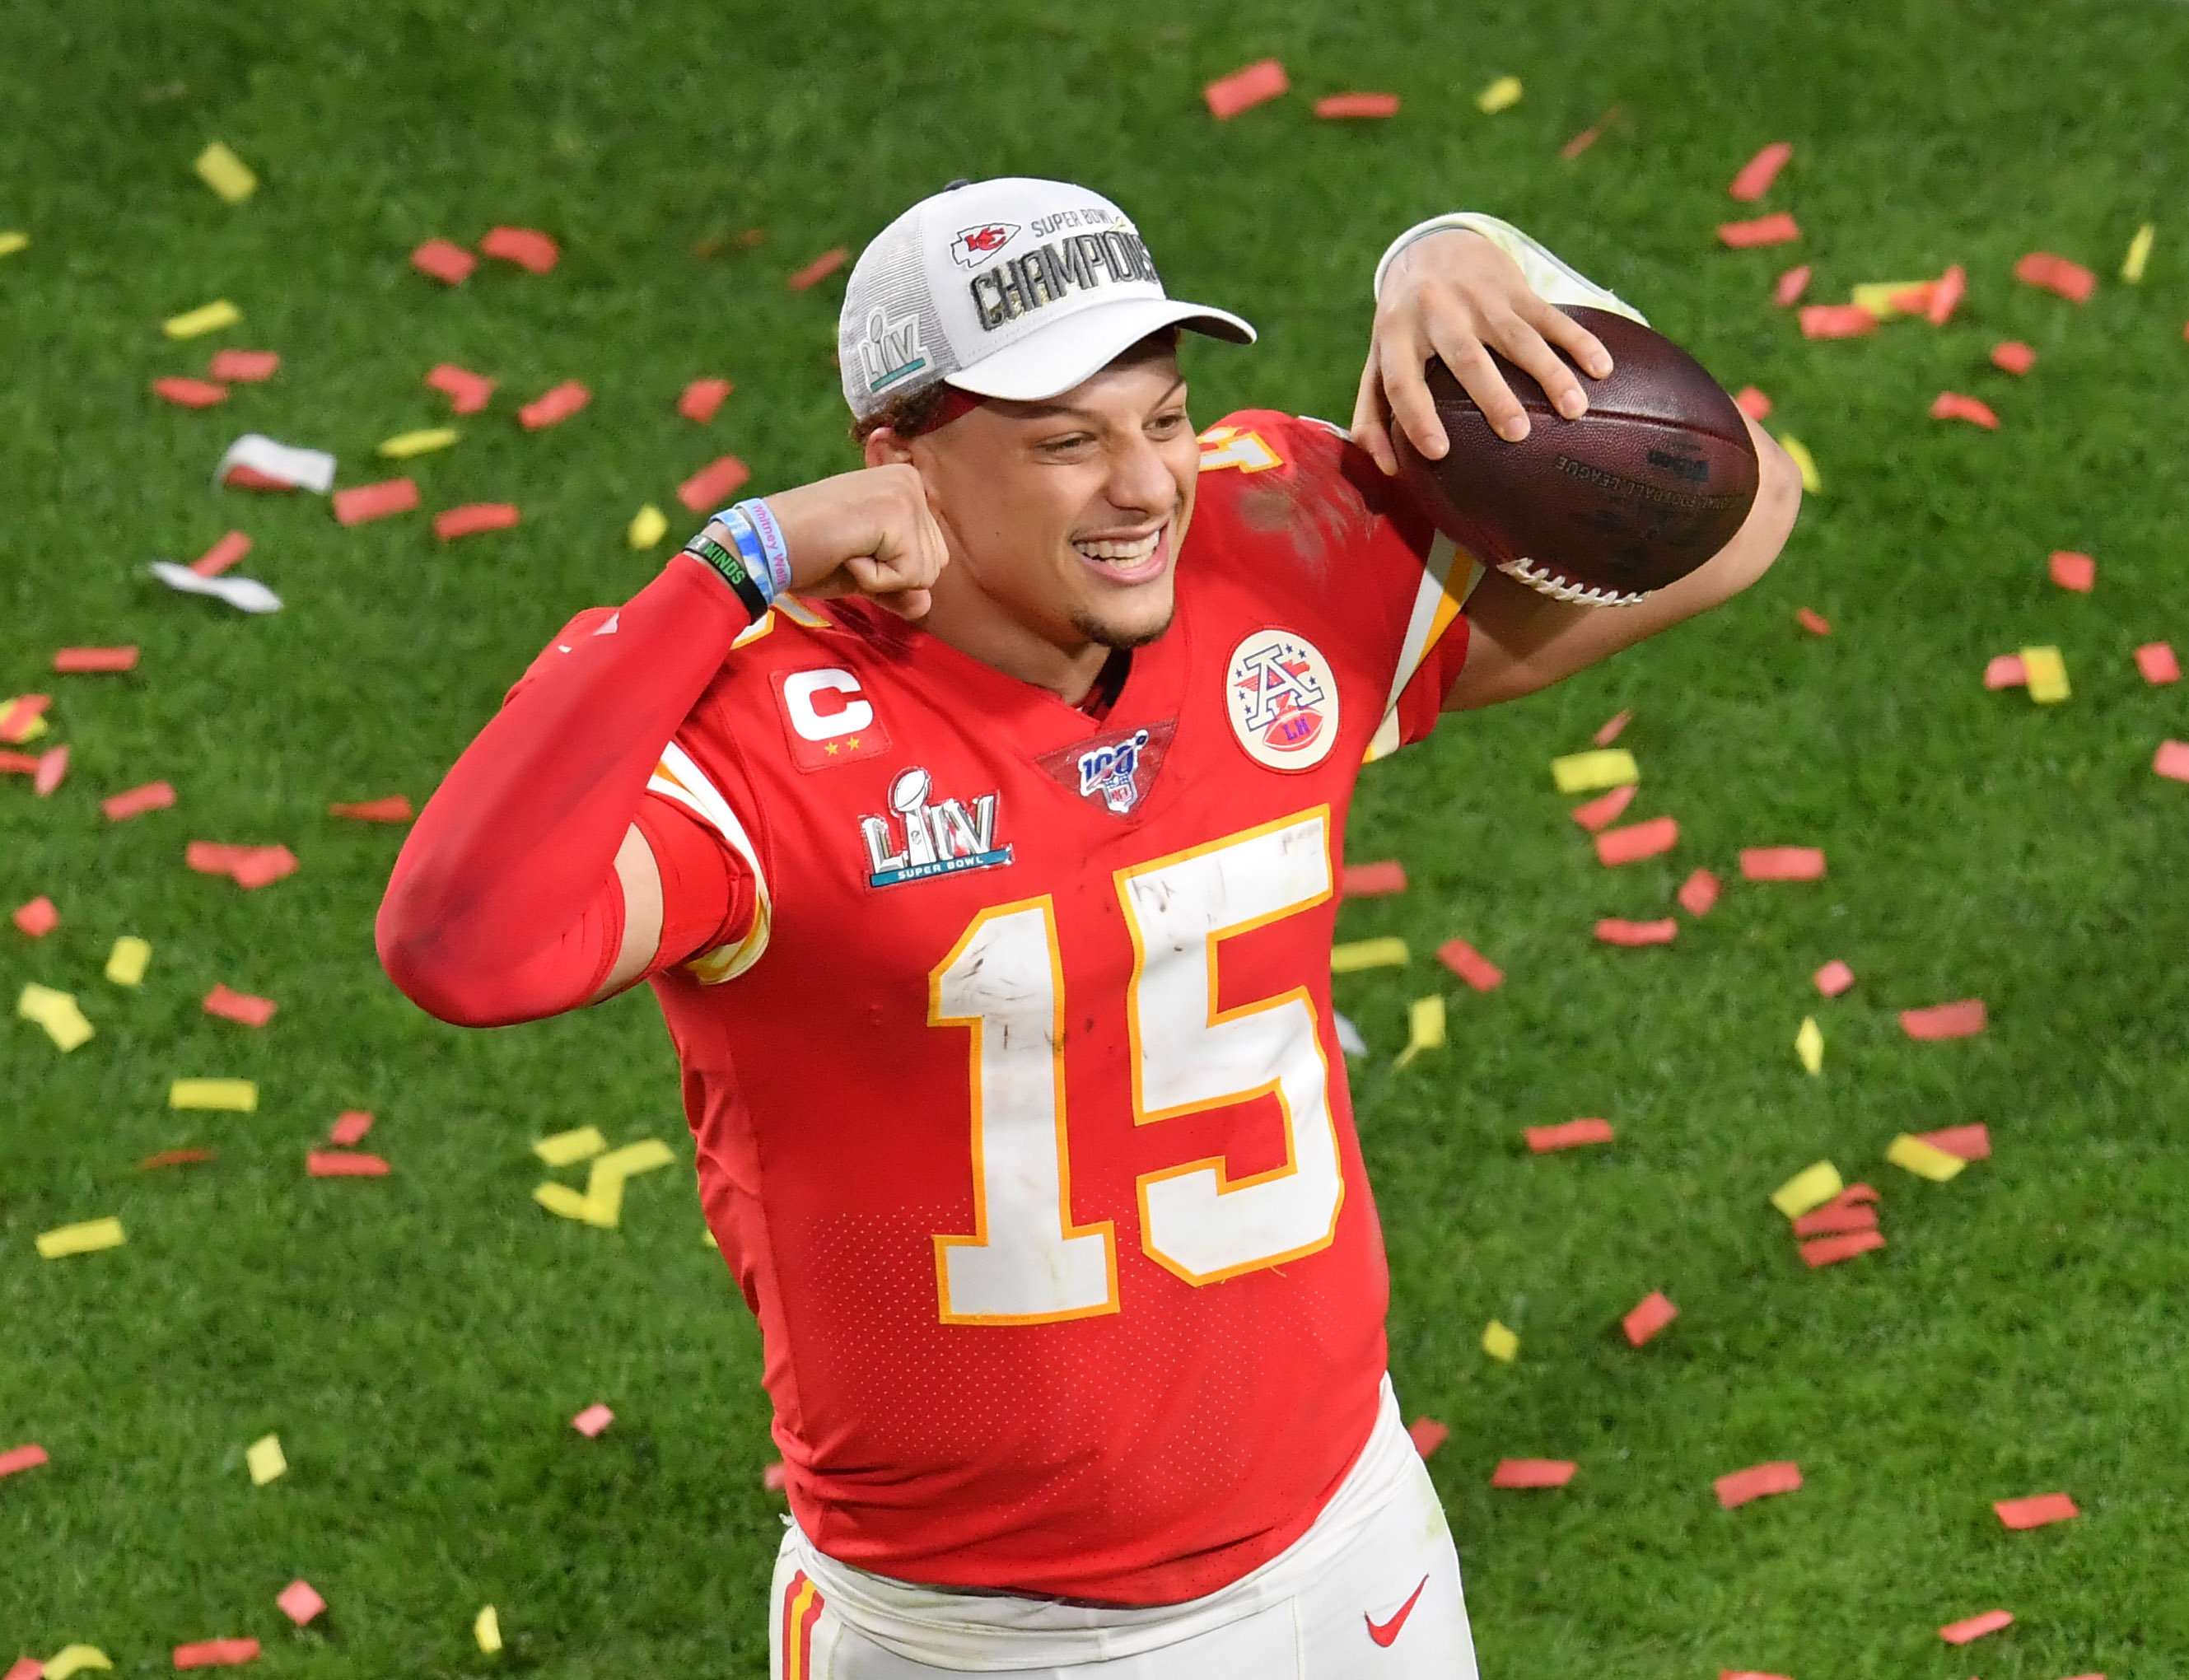 Top five Chiefs offensive players in Super Bowl LIV